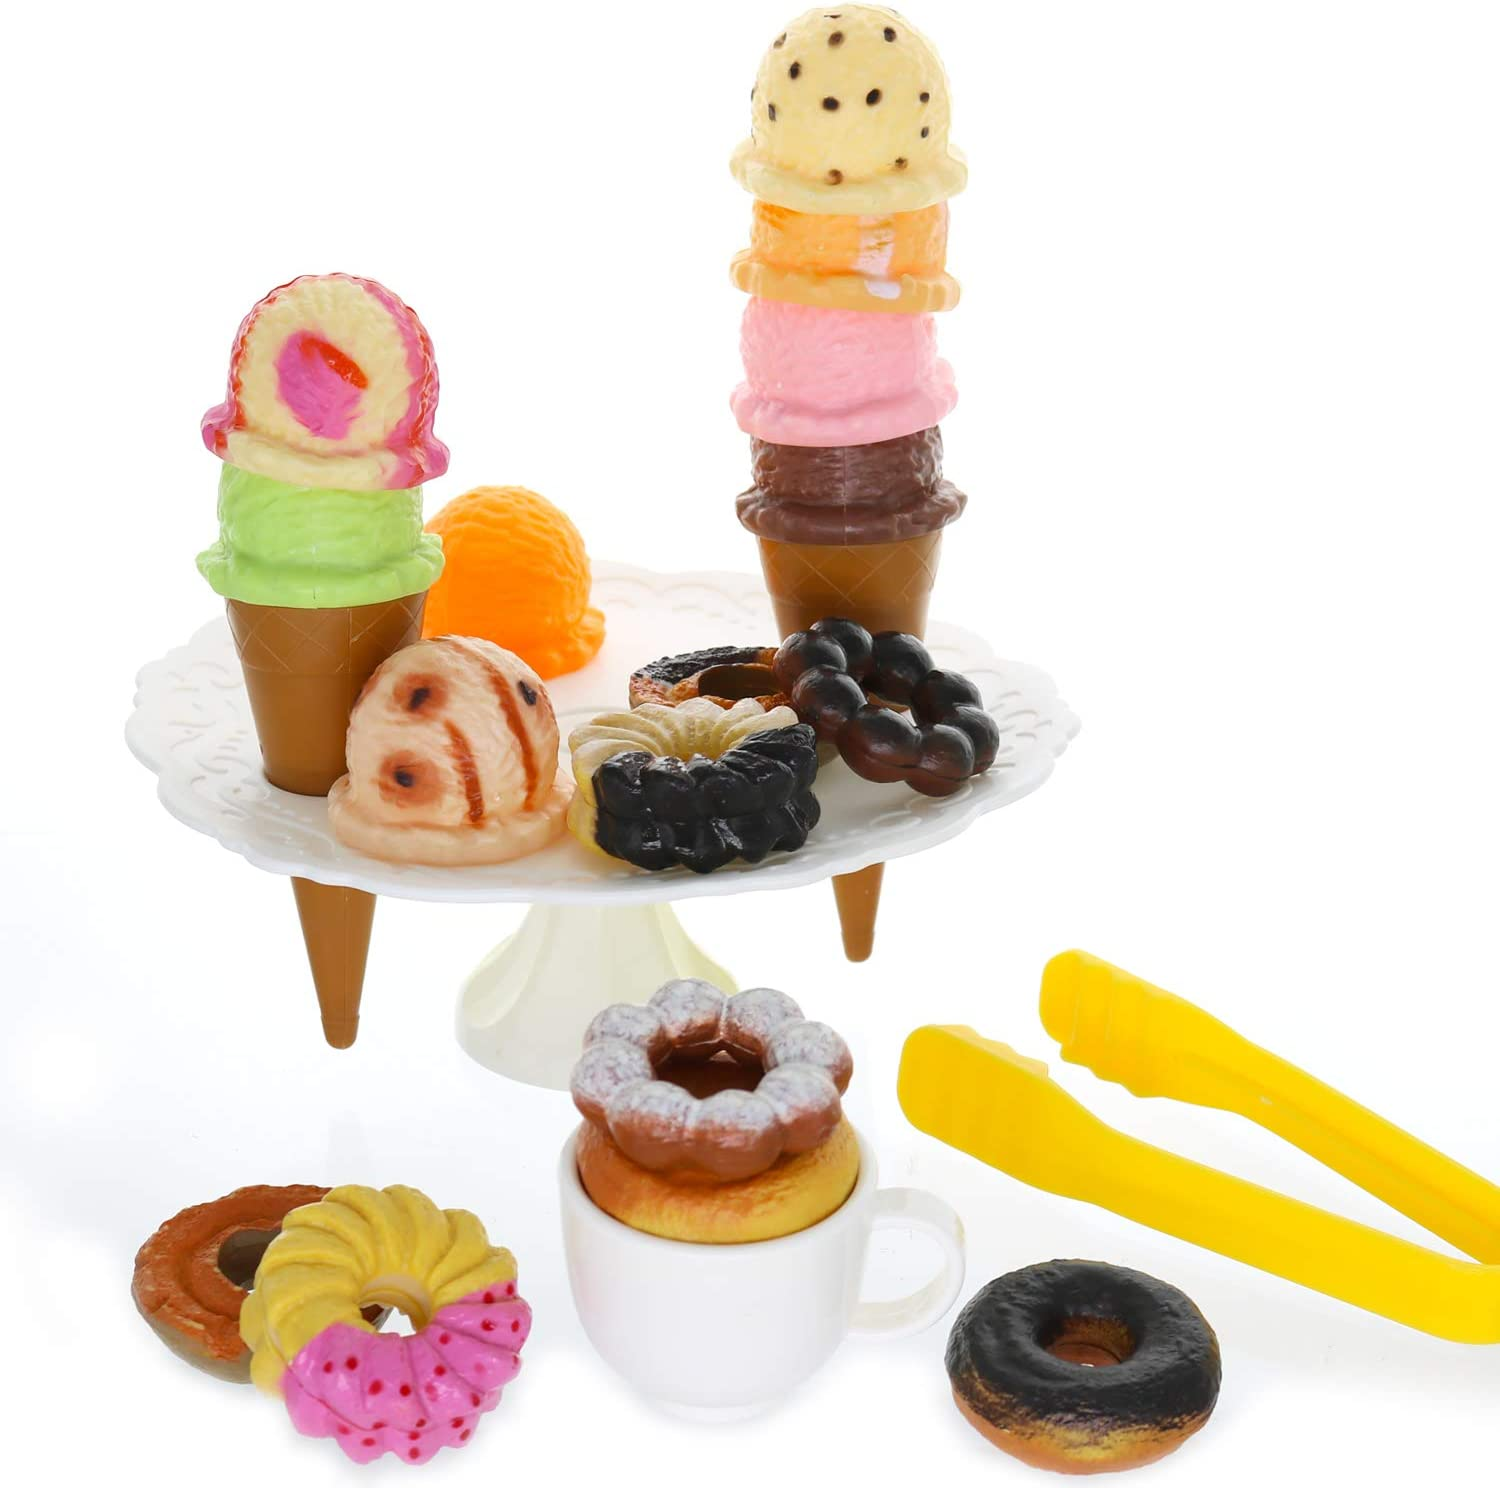 GiftExpress 21 PCS Ice Cream Donuts Pretend Play Toy, Play Food Toy Set for Kids